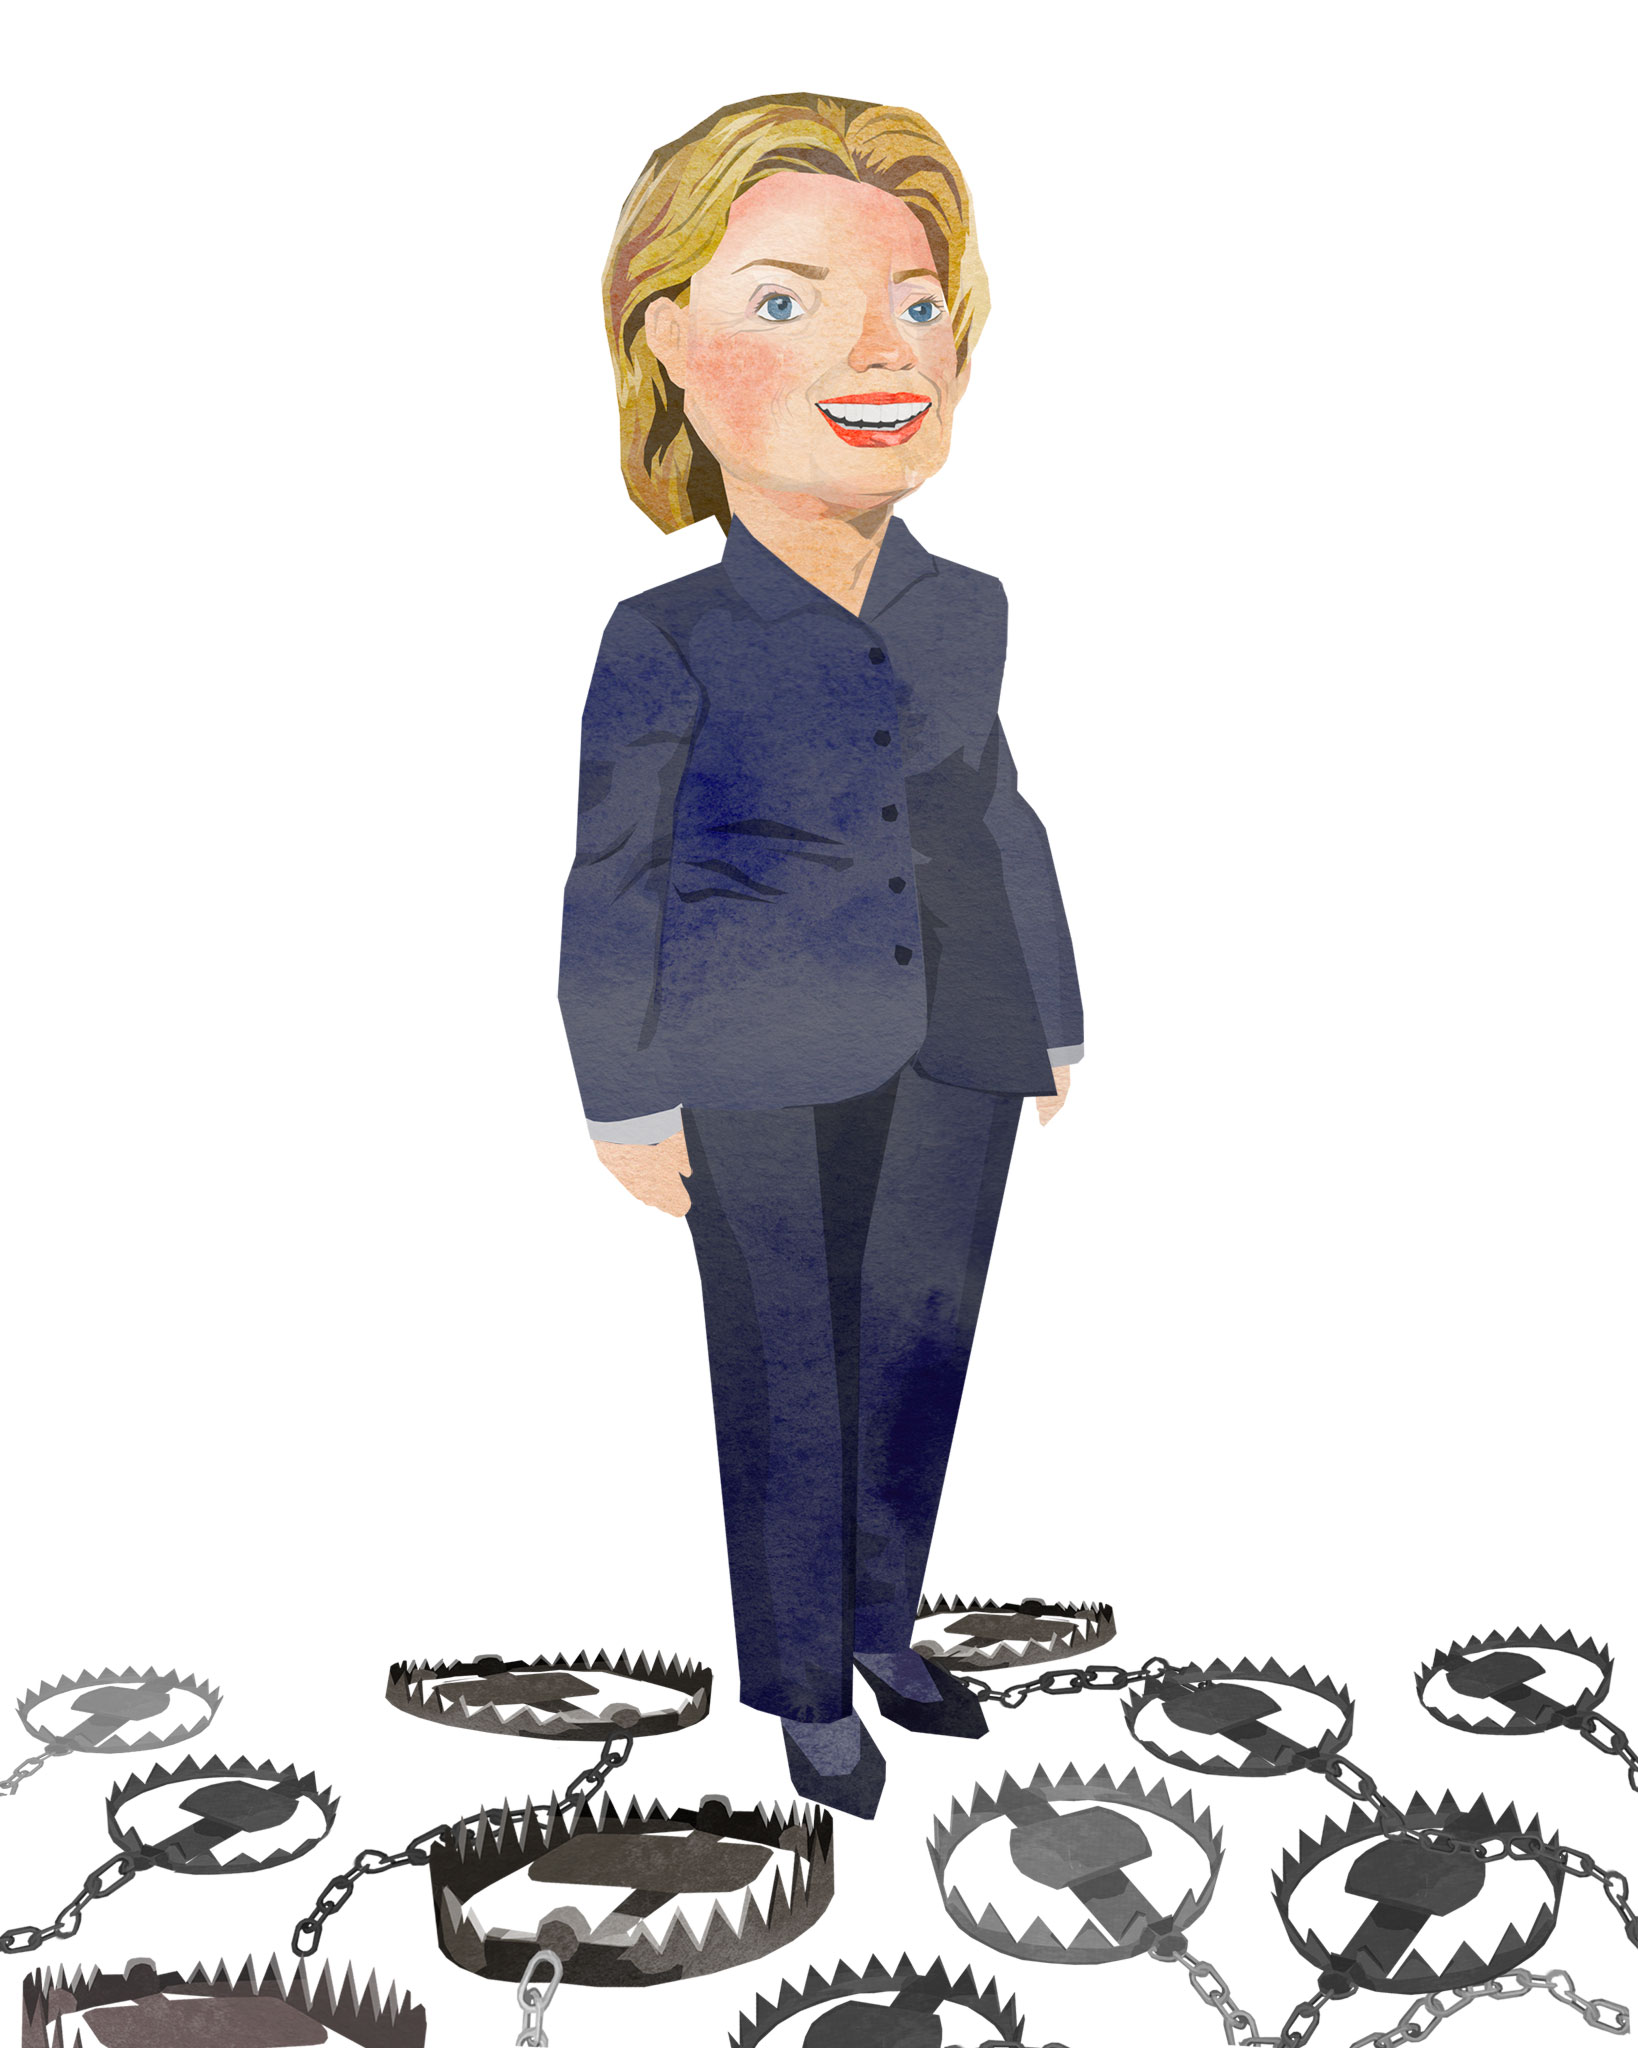 tram nguyen hilary clinton illustration